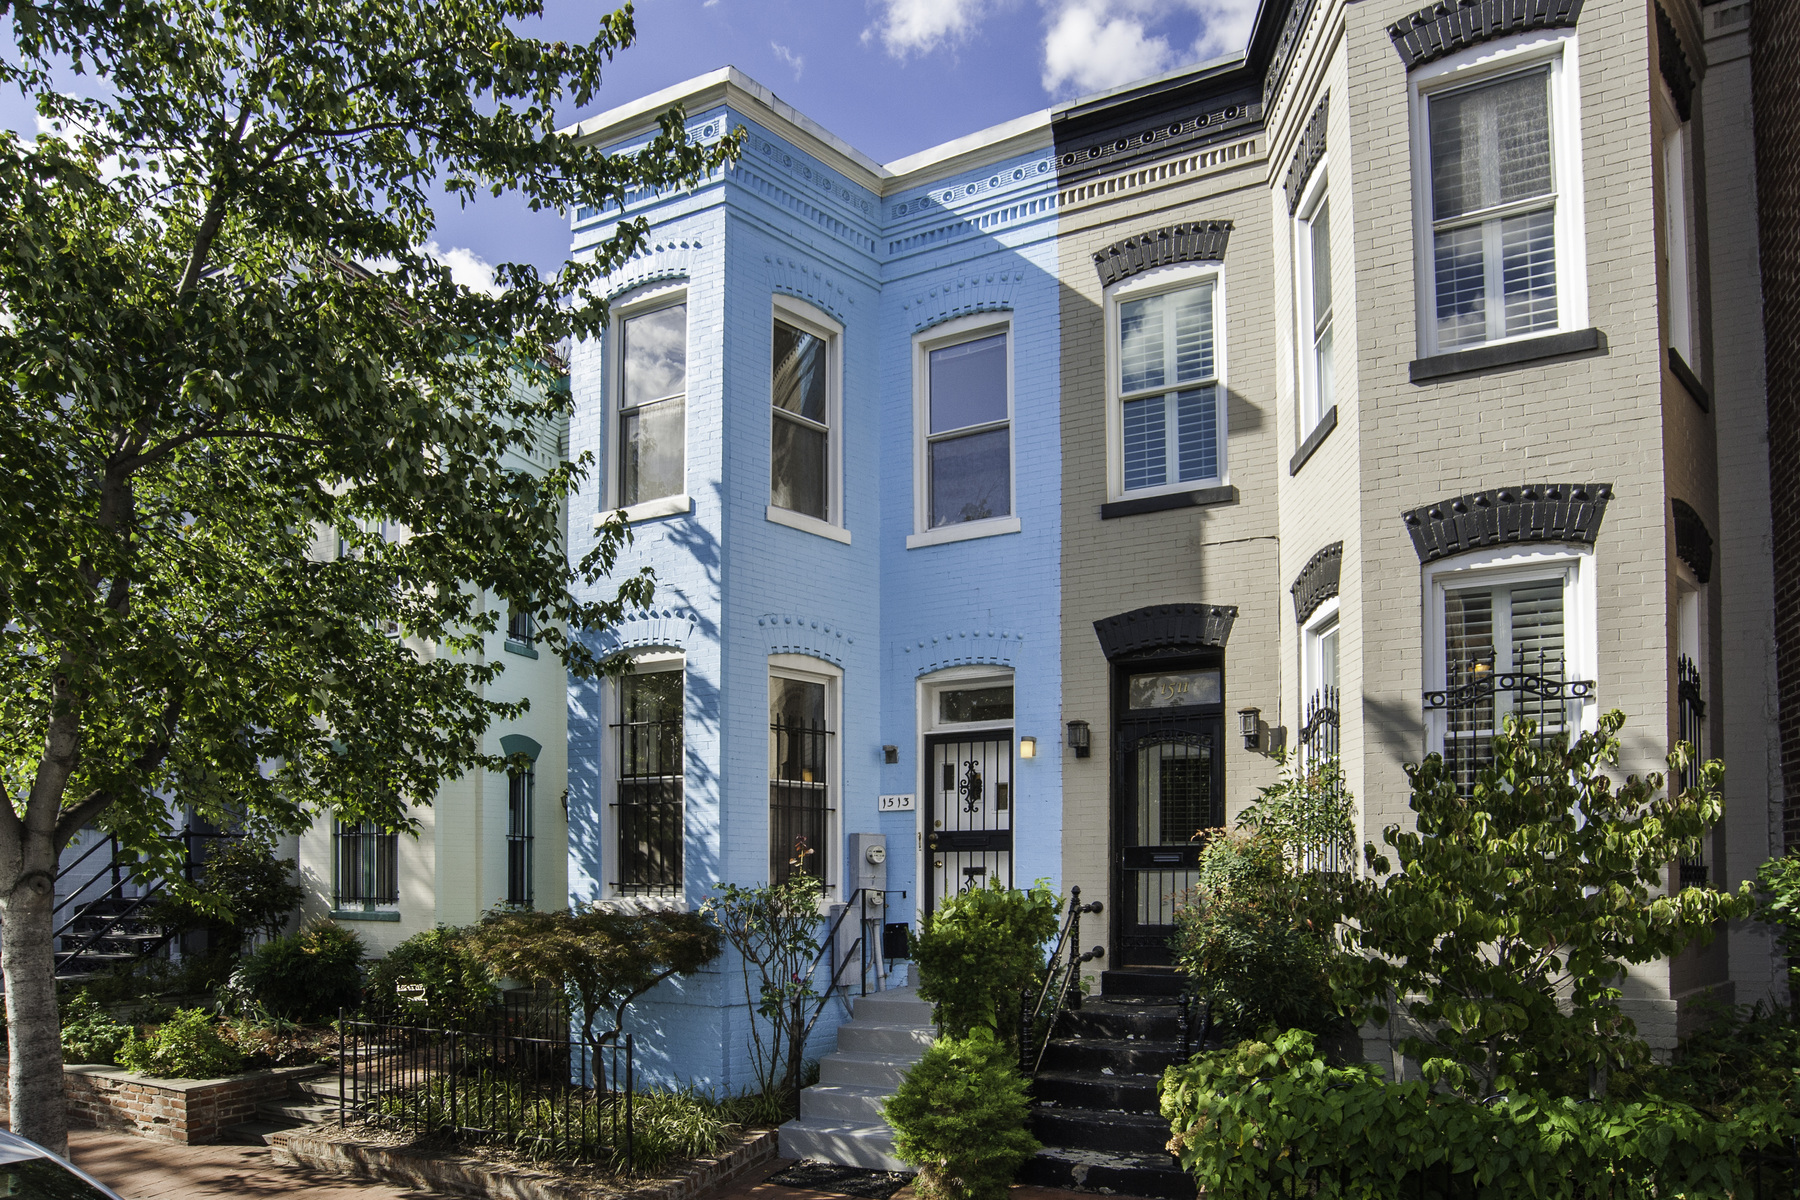 Townhouse for Sale at 1513 Church Street Nw, Washington Washington, District Of Columbia 20005 United States